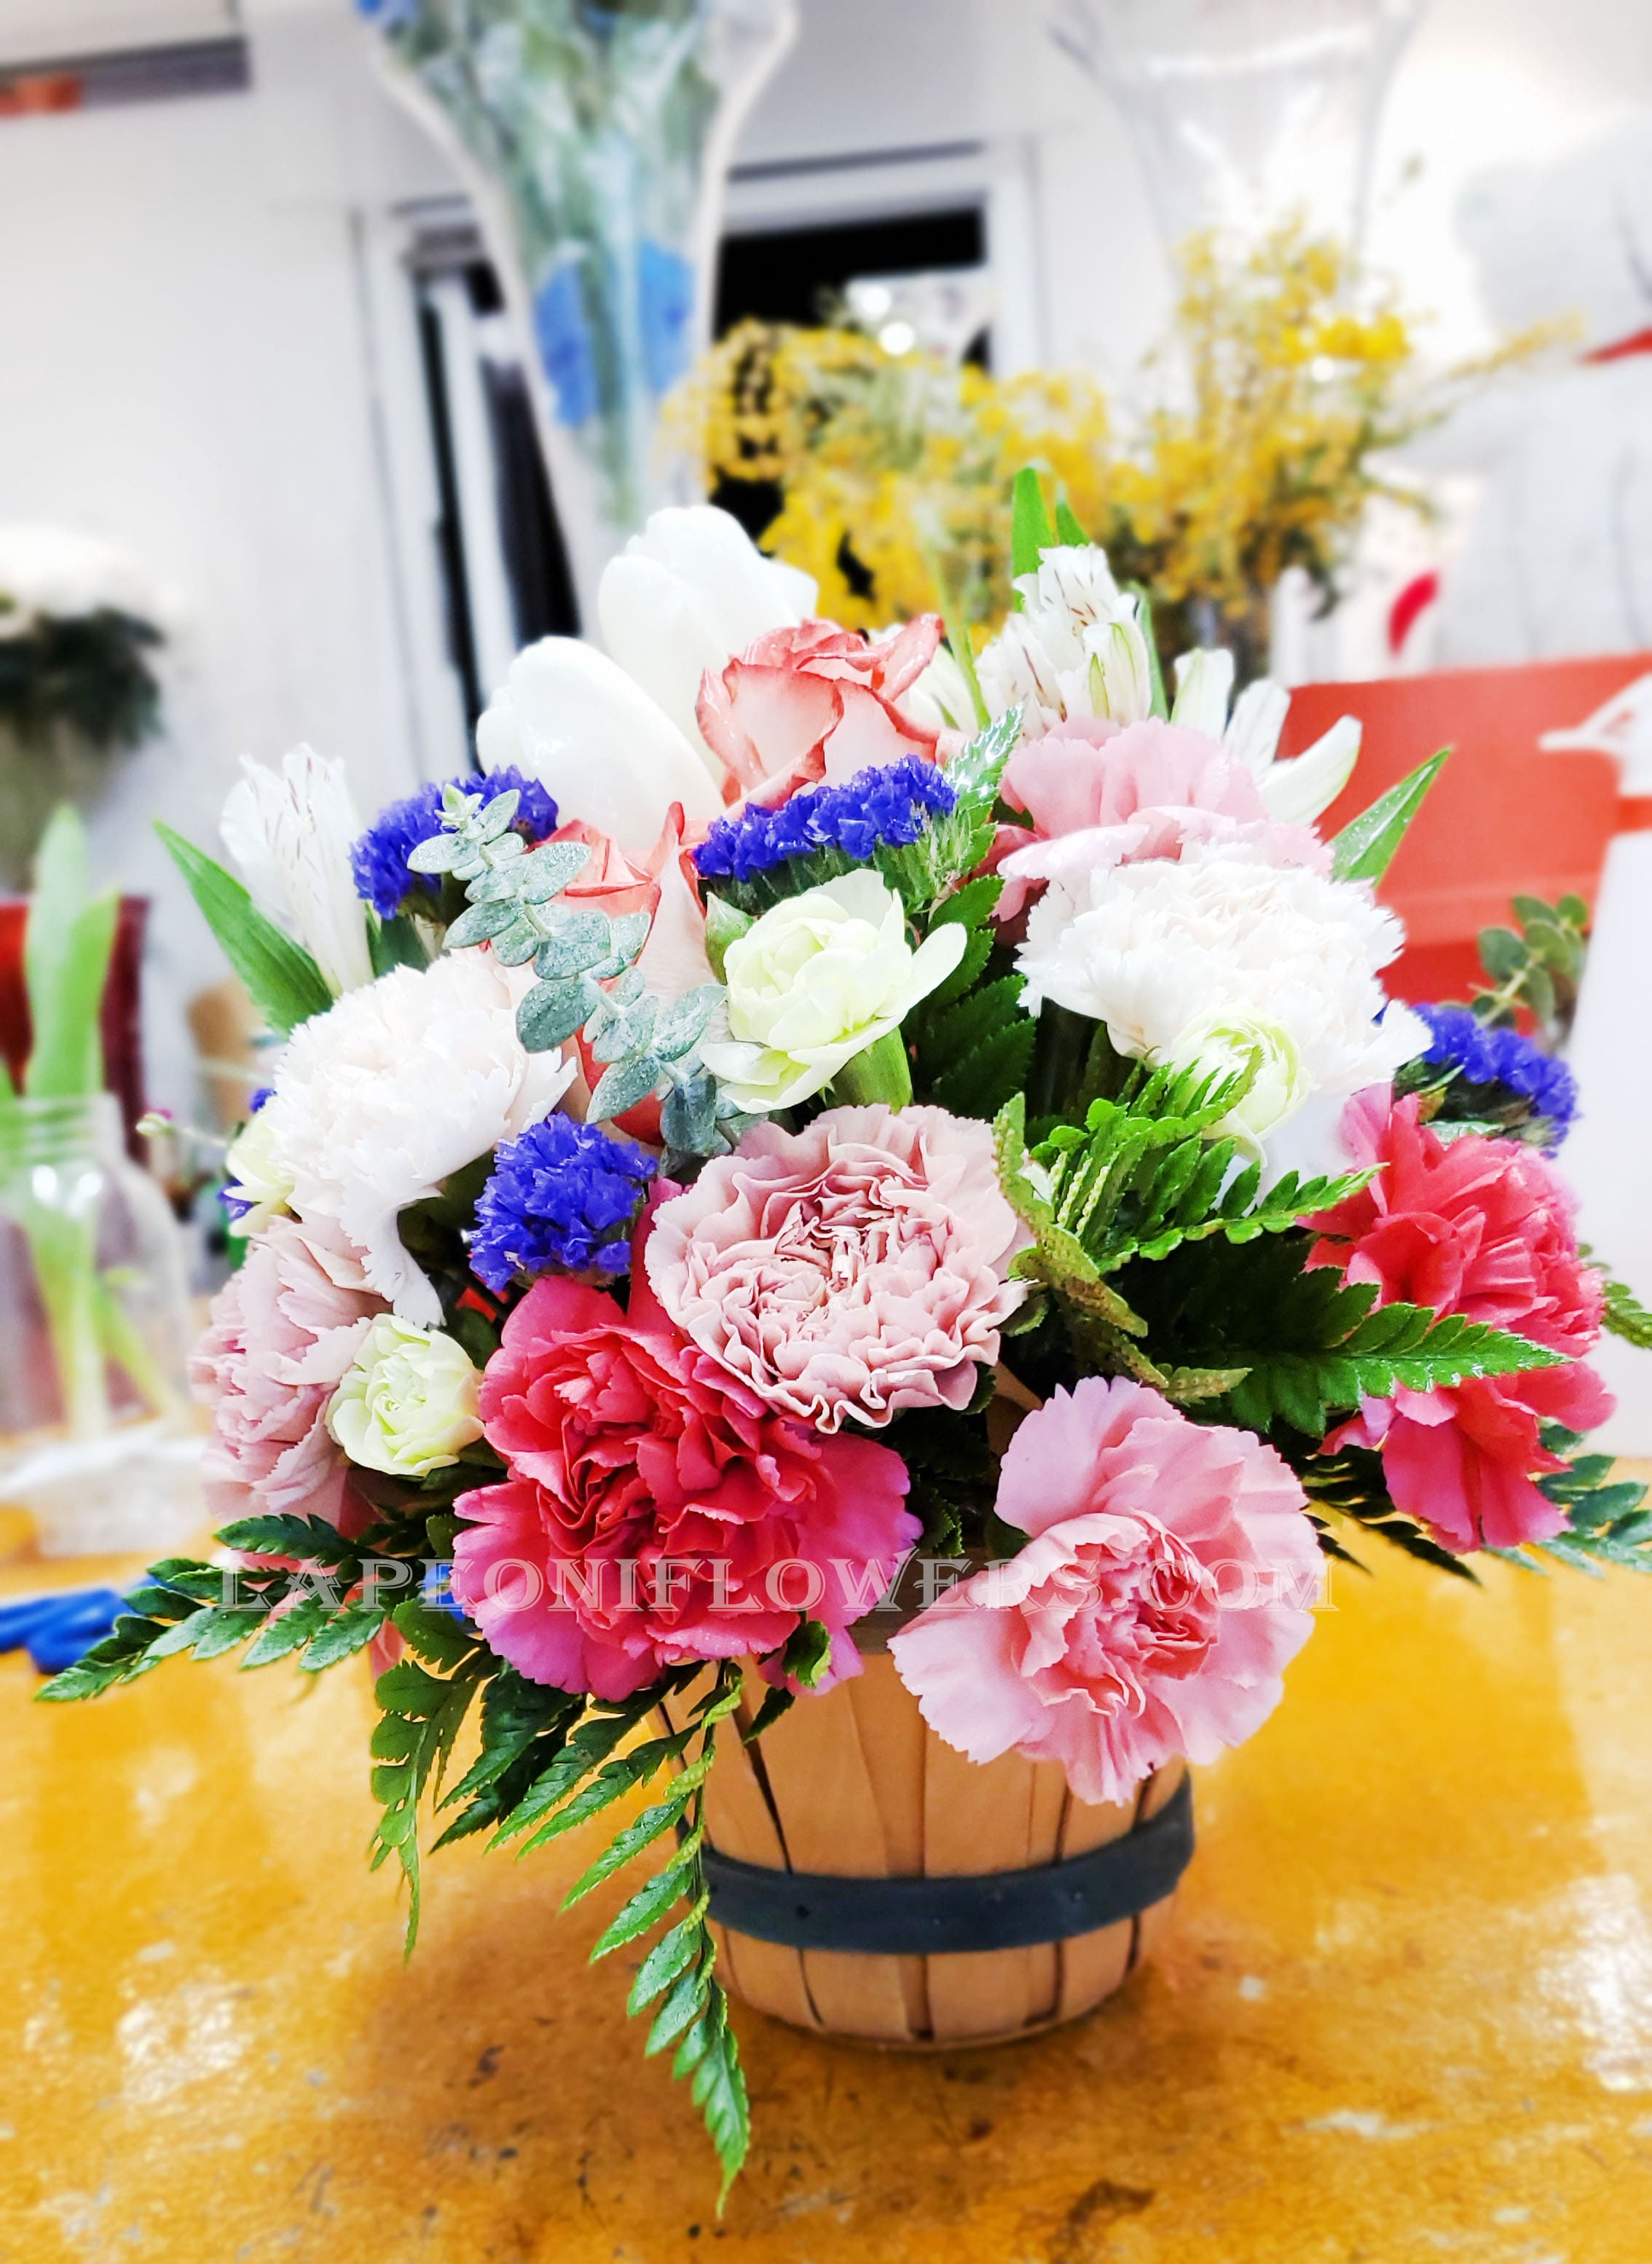 Simple Pleasure Basket - Lapeoni Flowers and Events